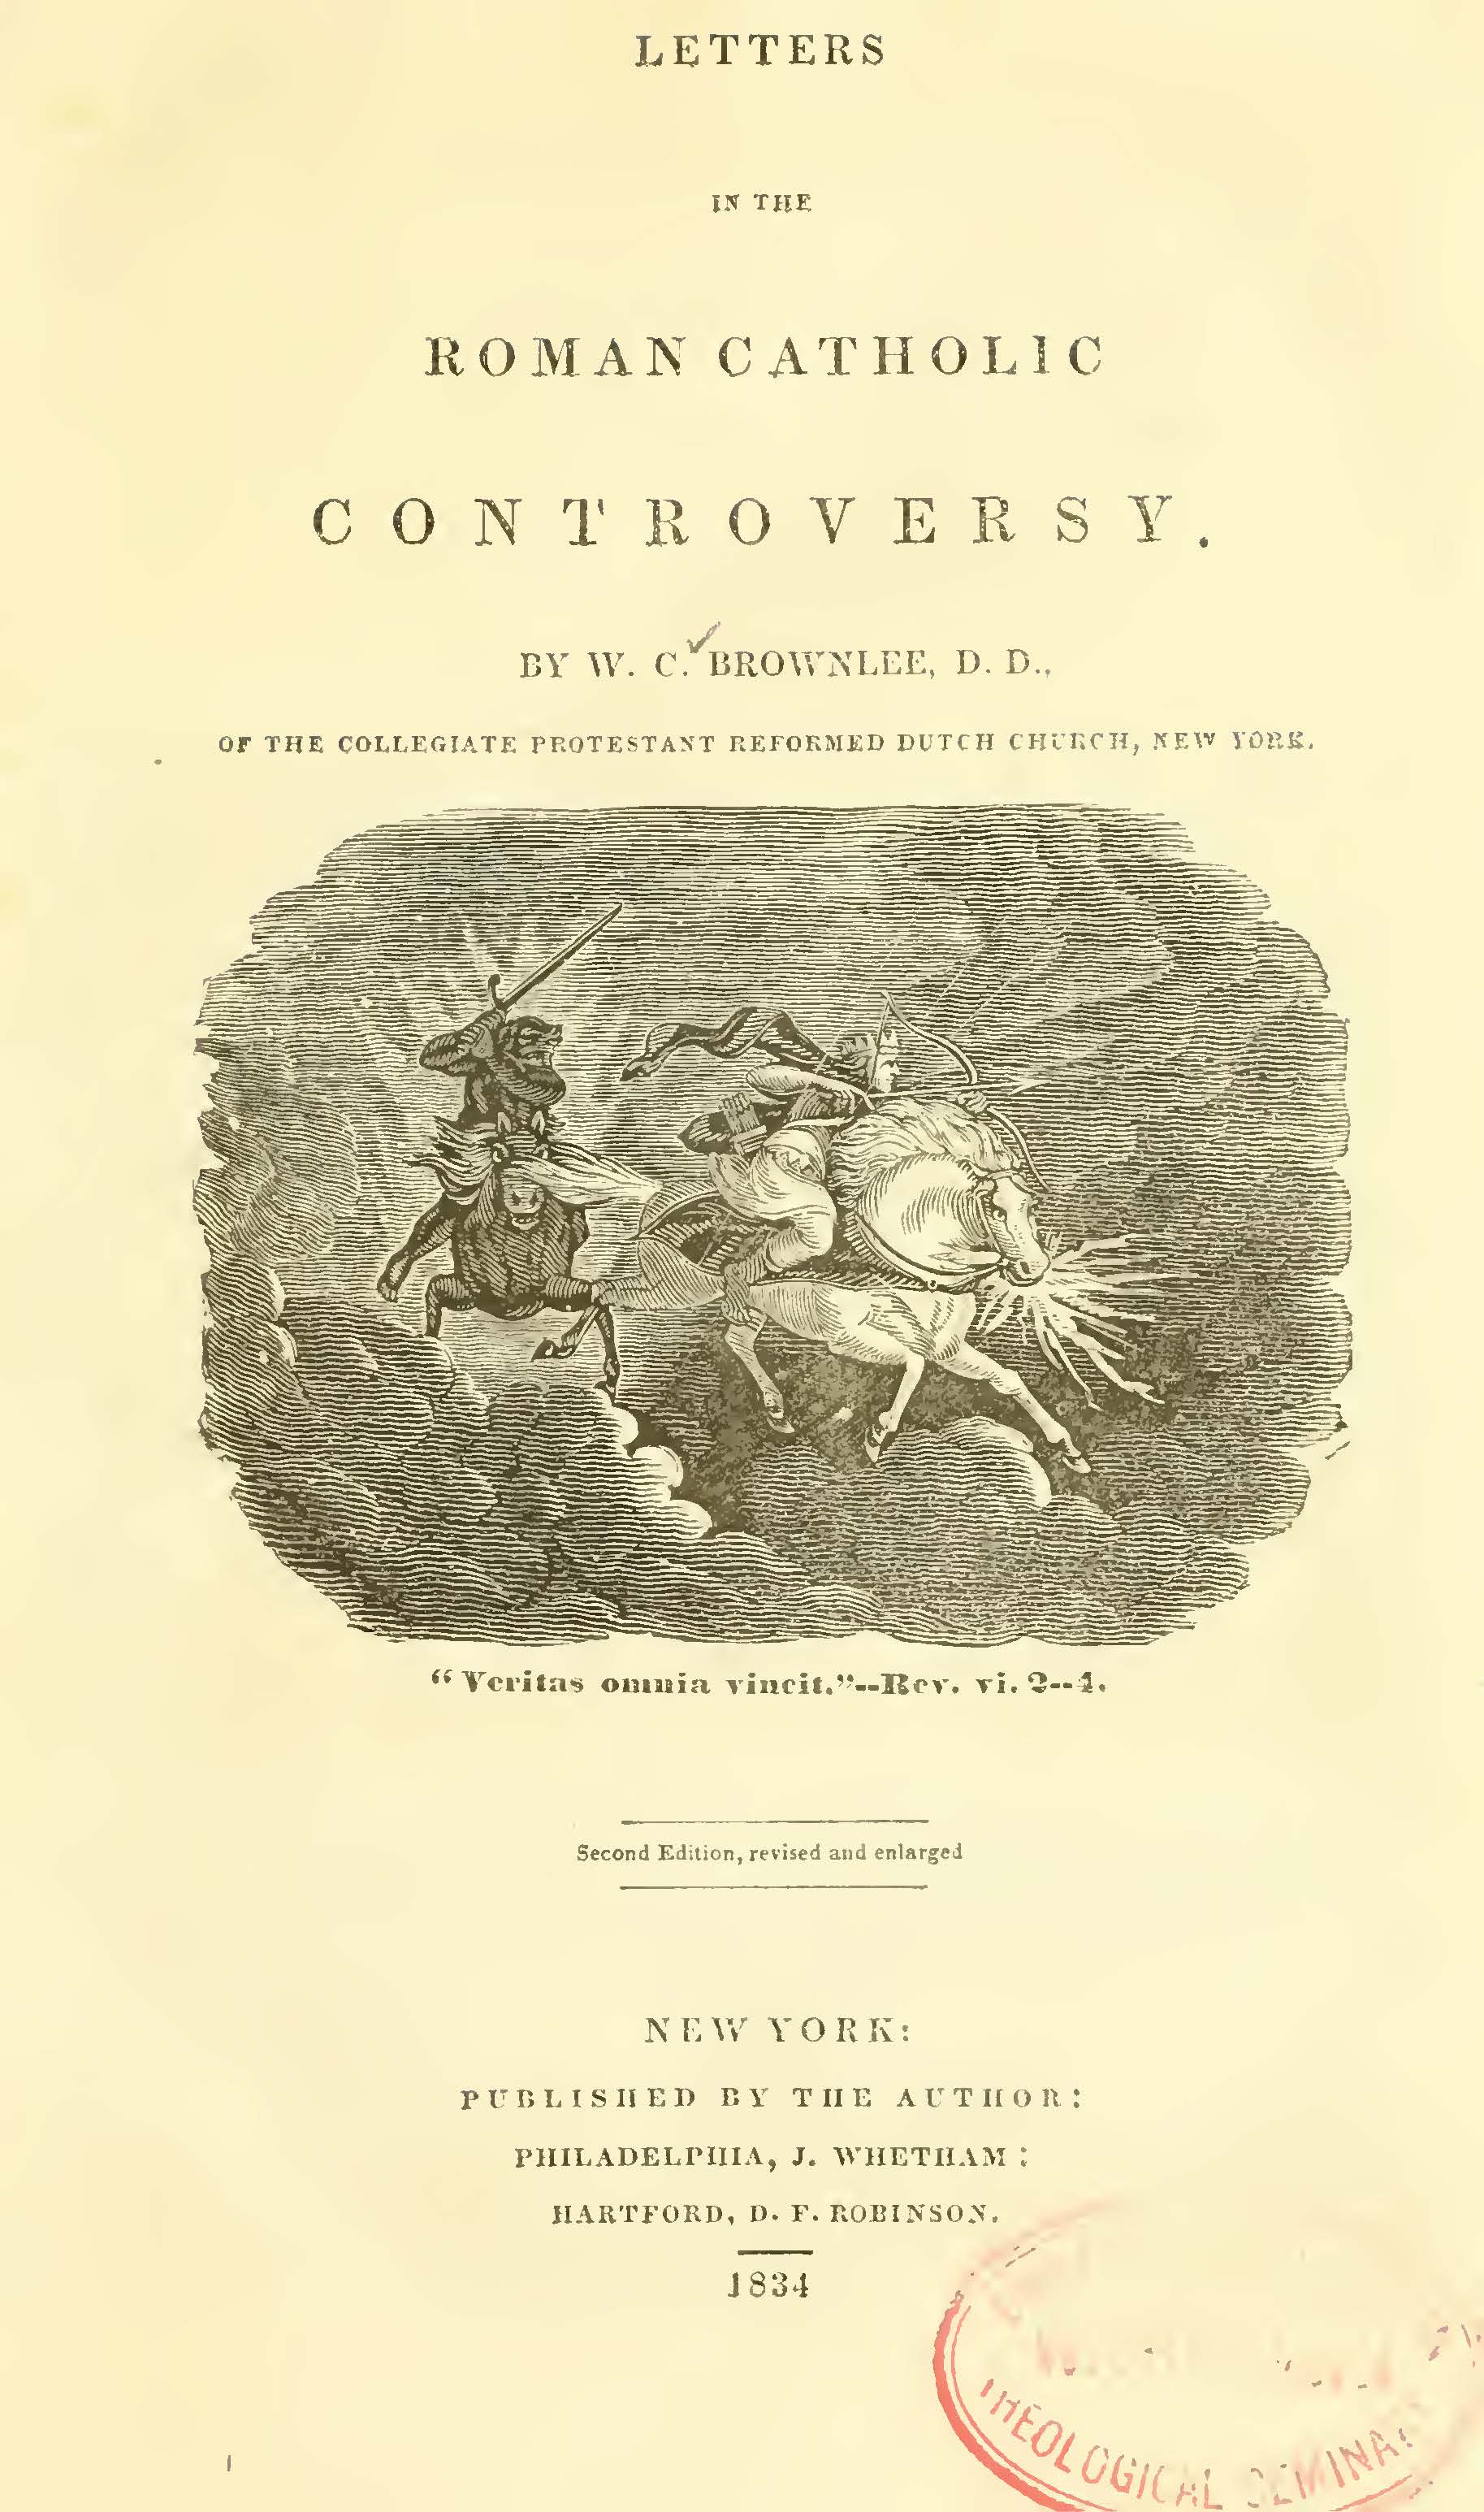 Brownlee, William Craig, Letters in the Roman Catholic Controversy Title Page.jpg